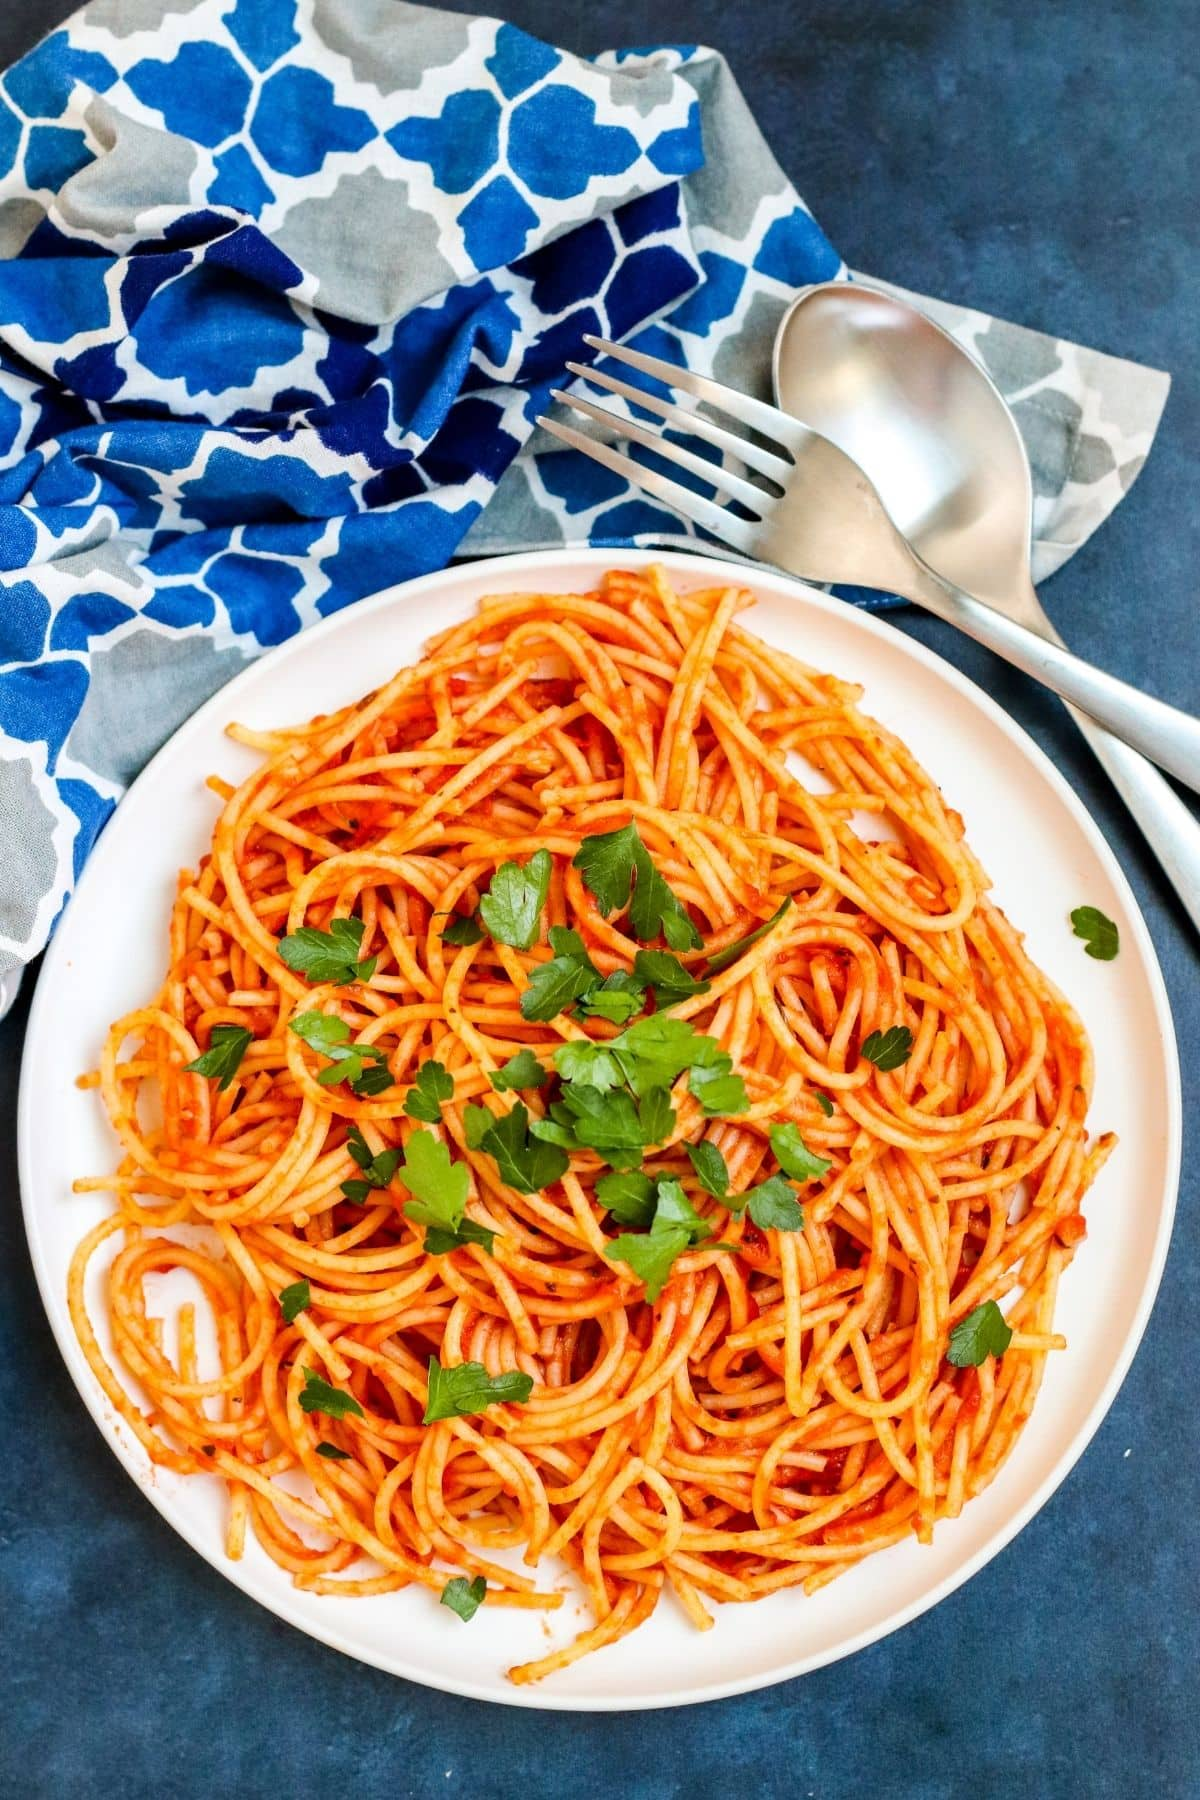 Plate of spaghetti with tomato sauce garnished with Italian parsley